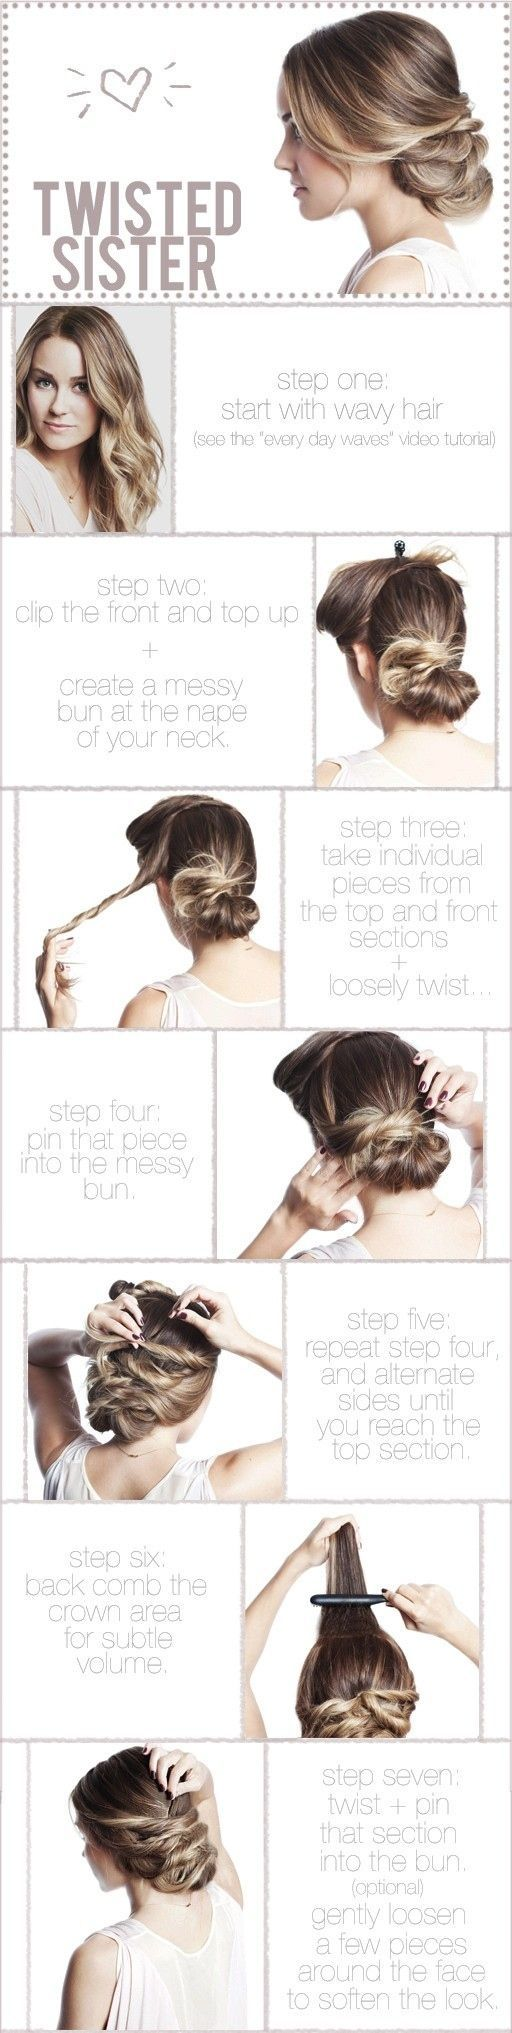 How-To Guide to Hairstyles